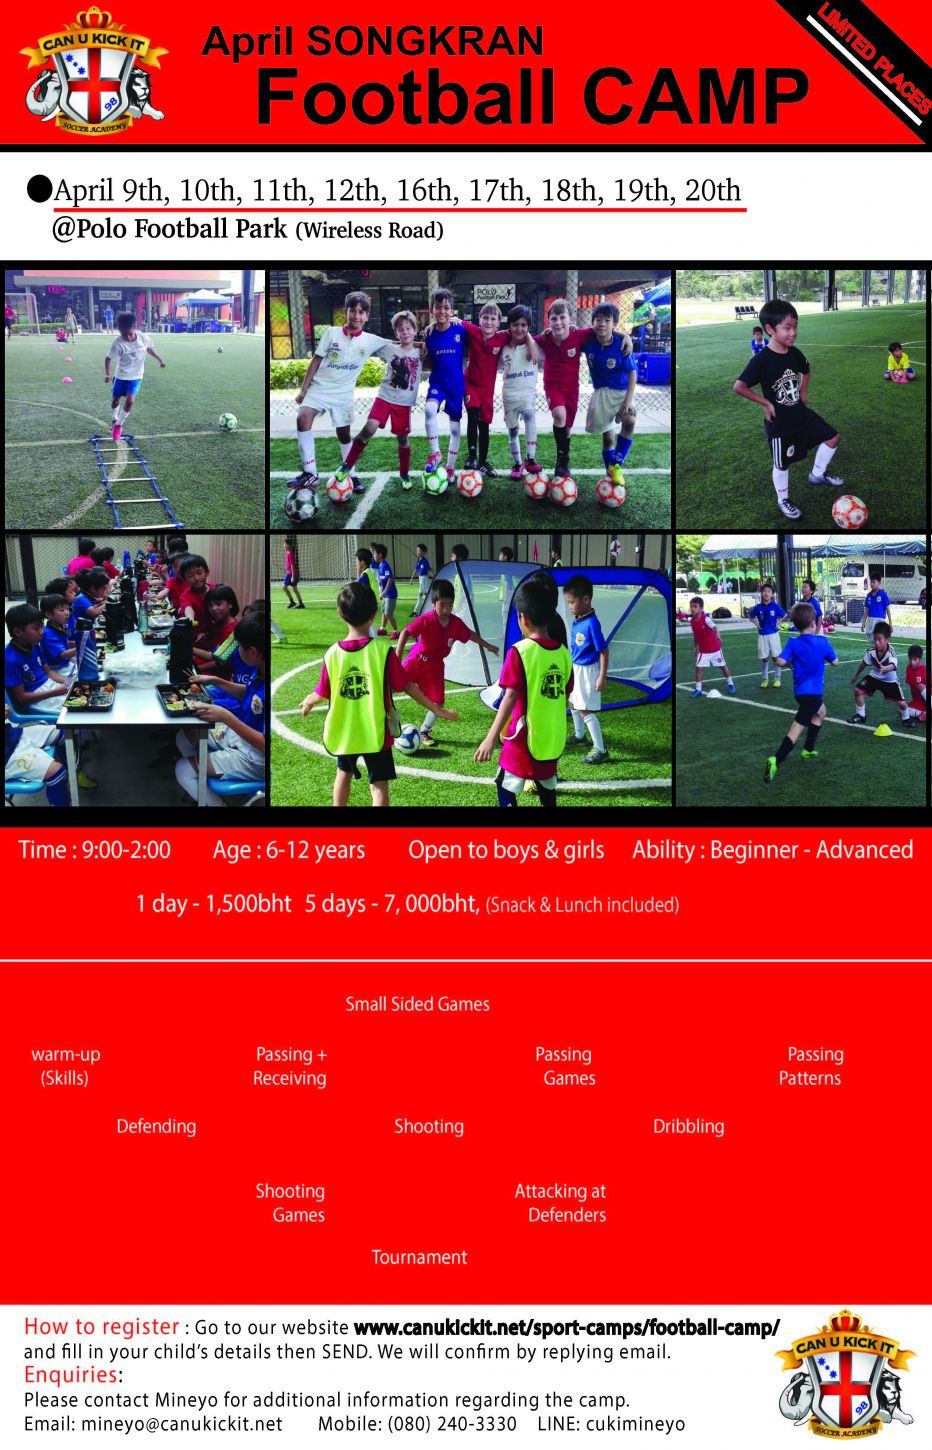 April Songkran Soccer Camp 2018